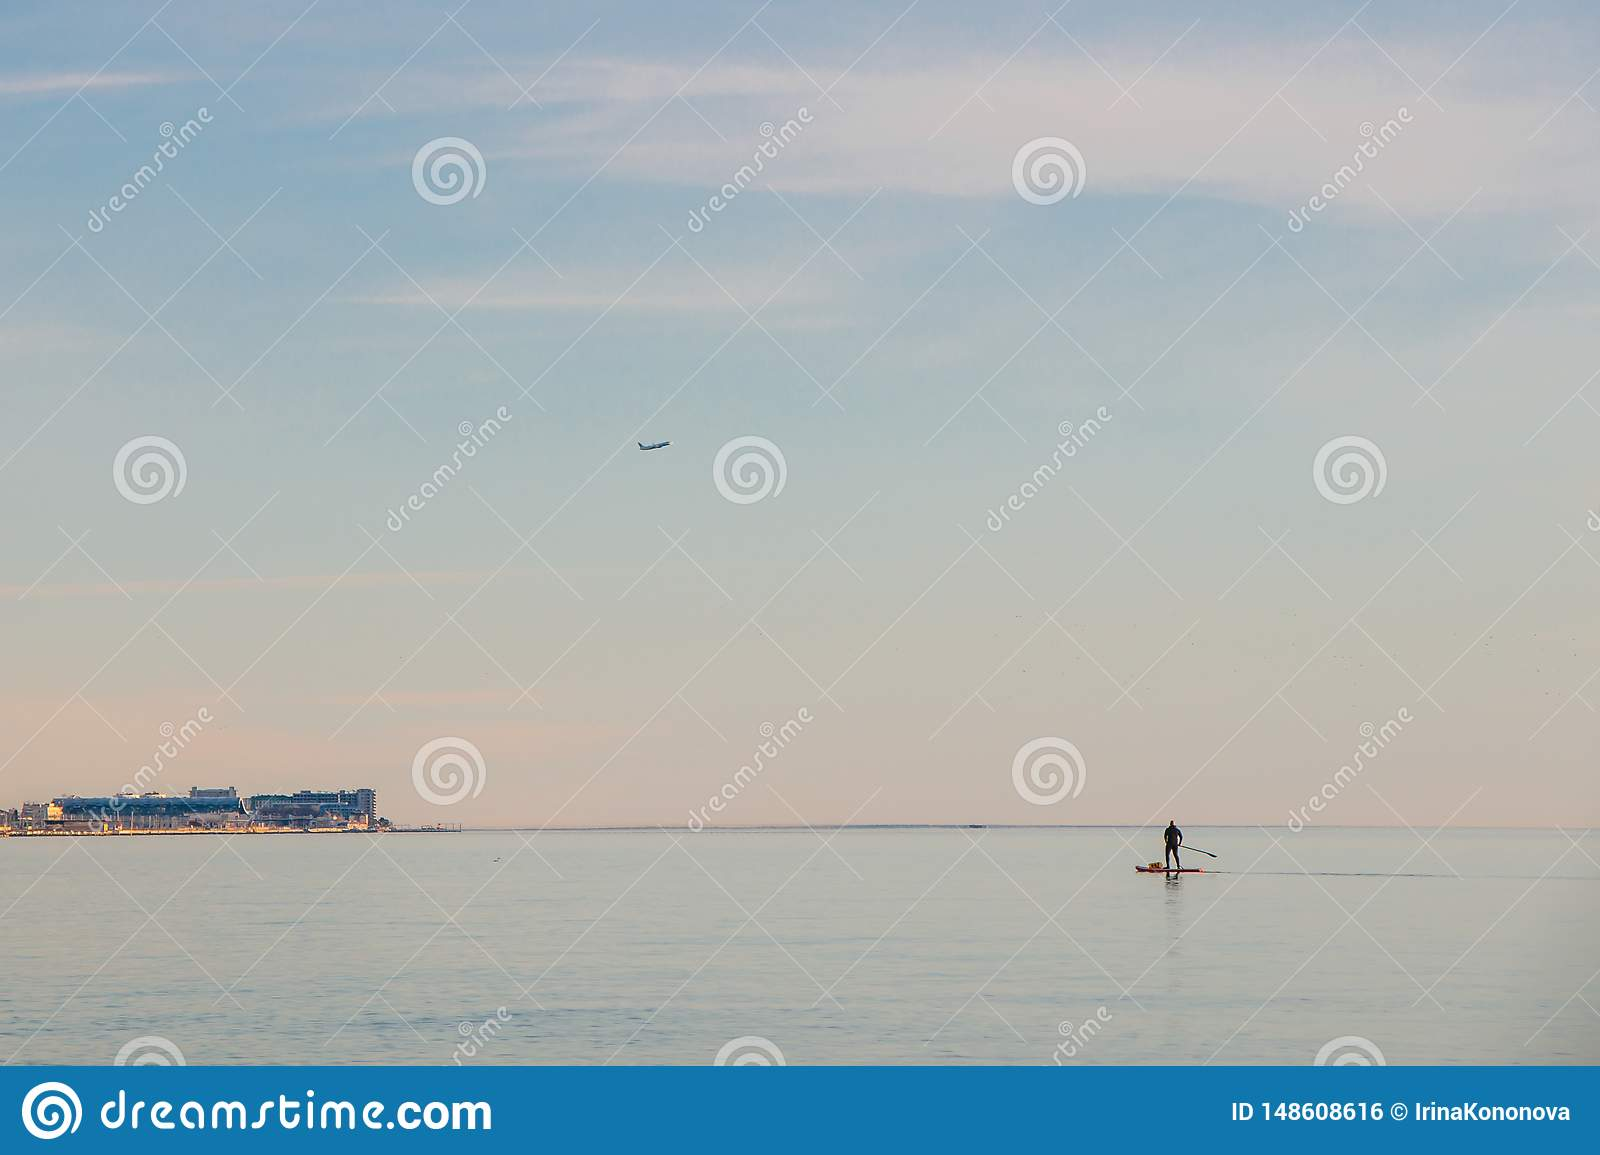 A lone man with a bag moving across the sea on a surfboard with an oar. Minimalism